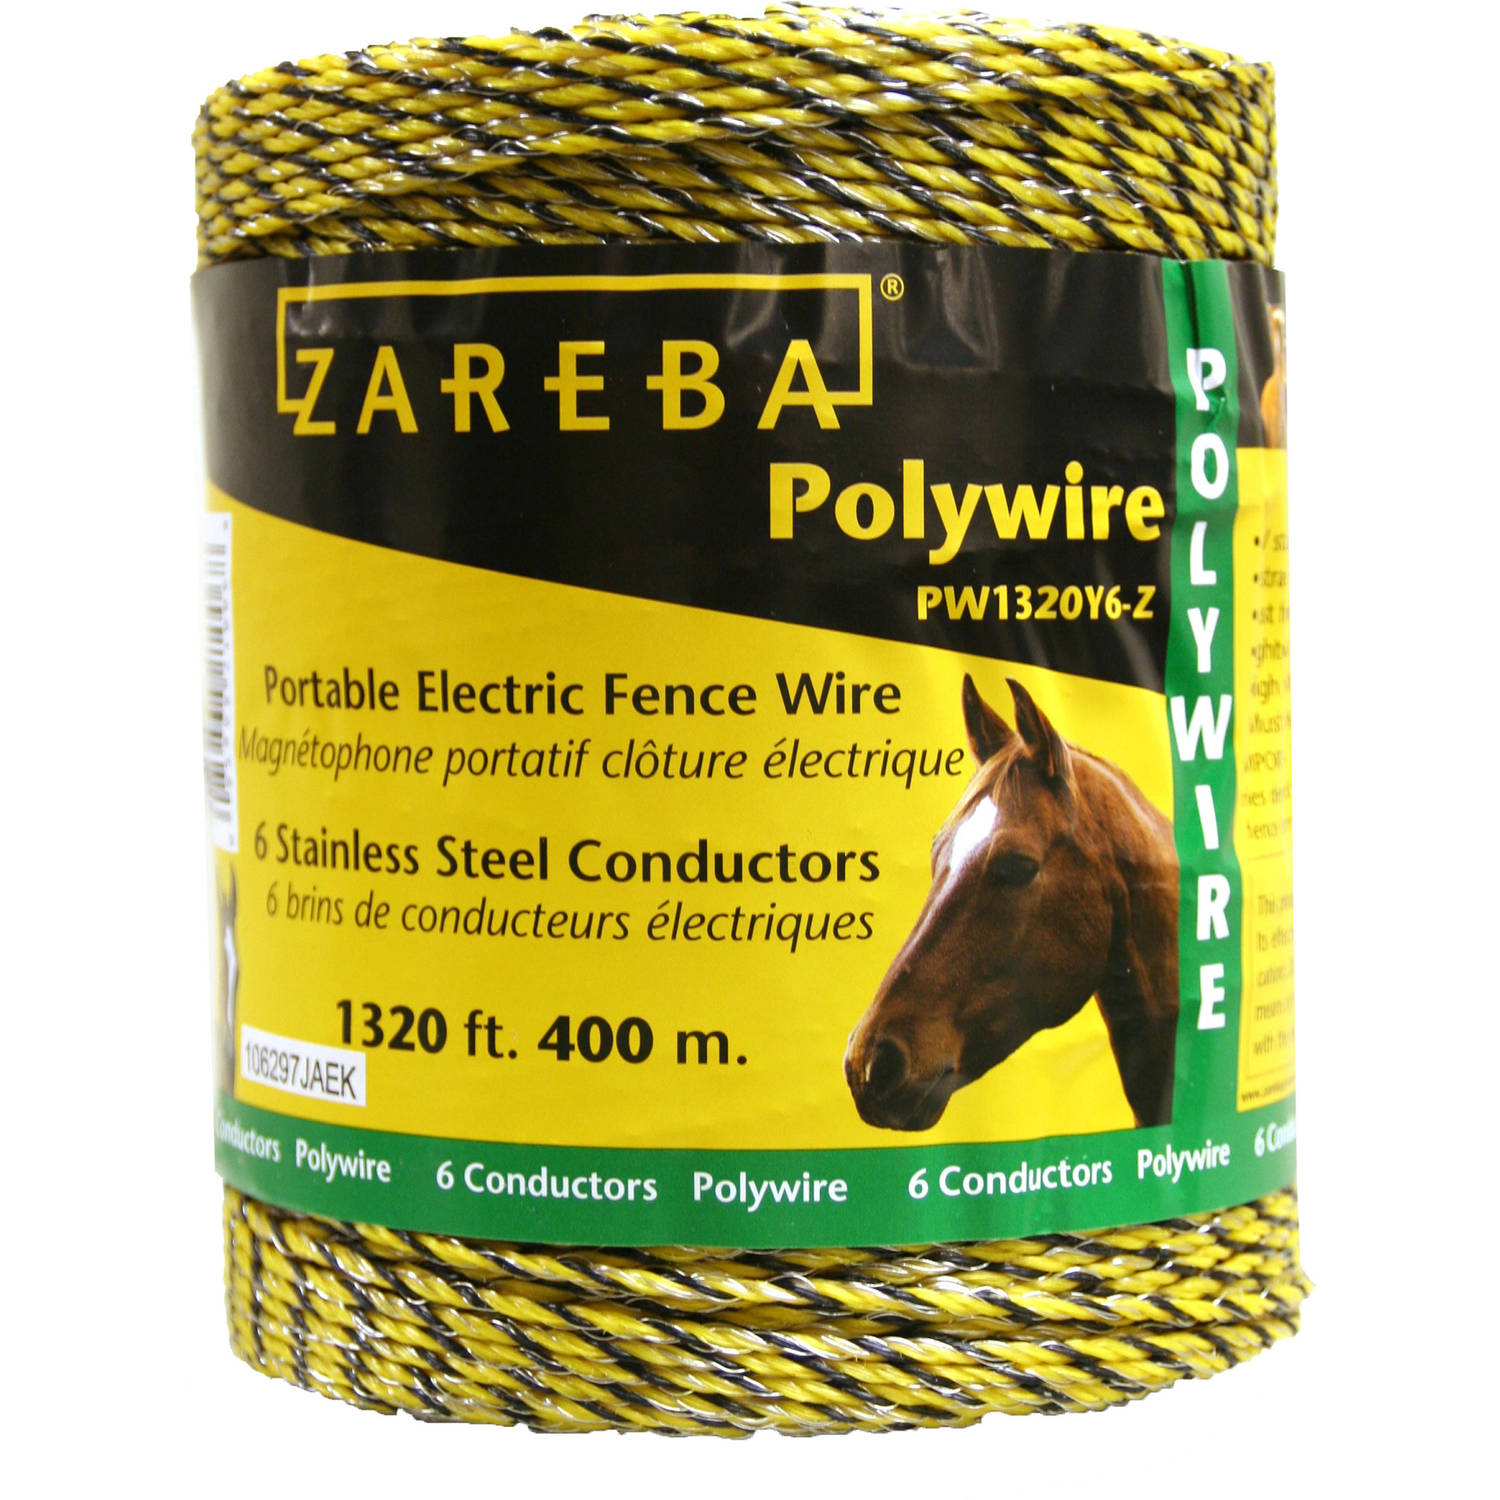 Zareba 1320 feet Polywire with 6 Conductors, 400 meters